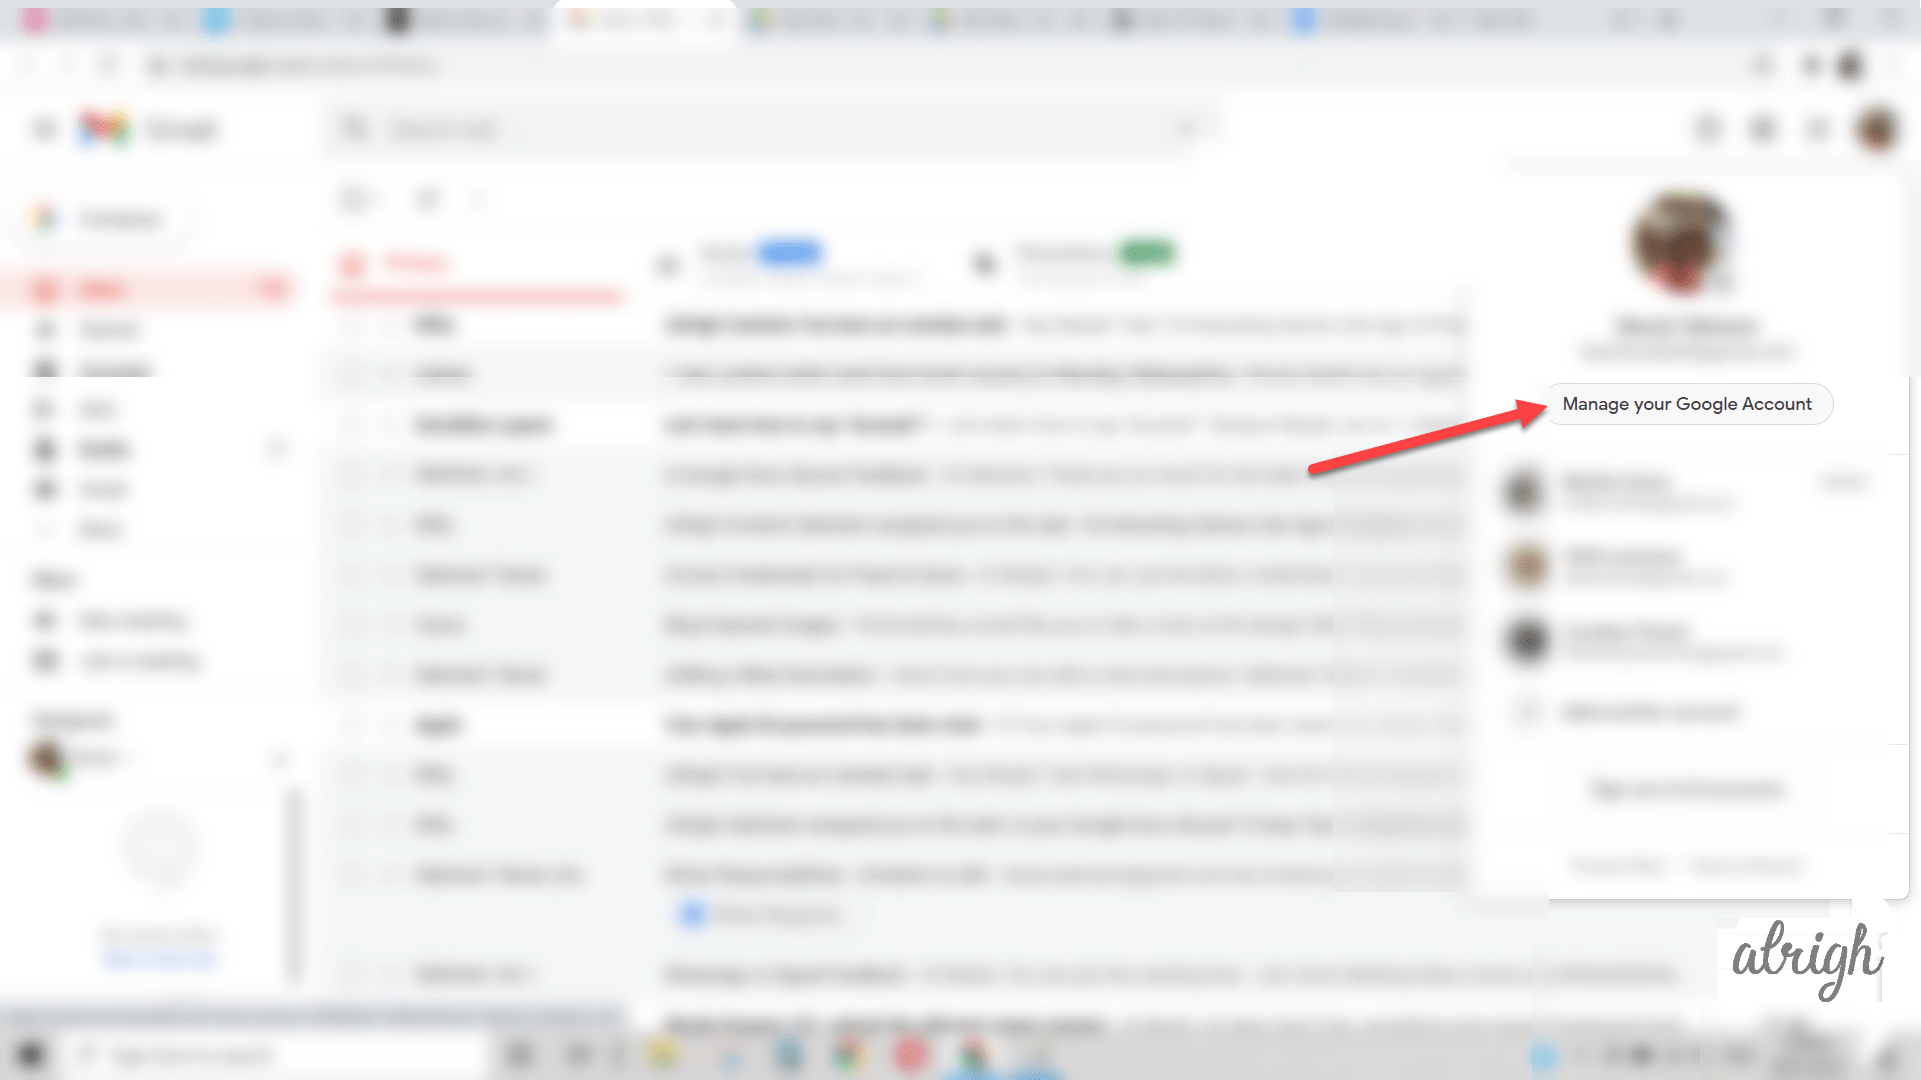 On gmail click on manage your google account option